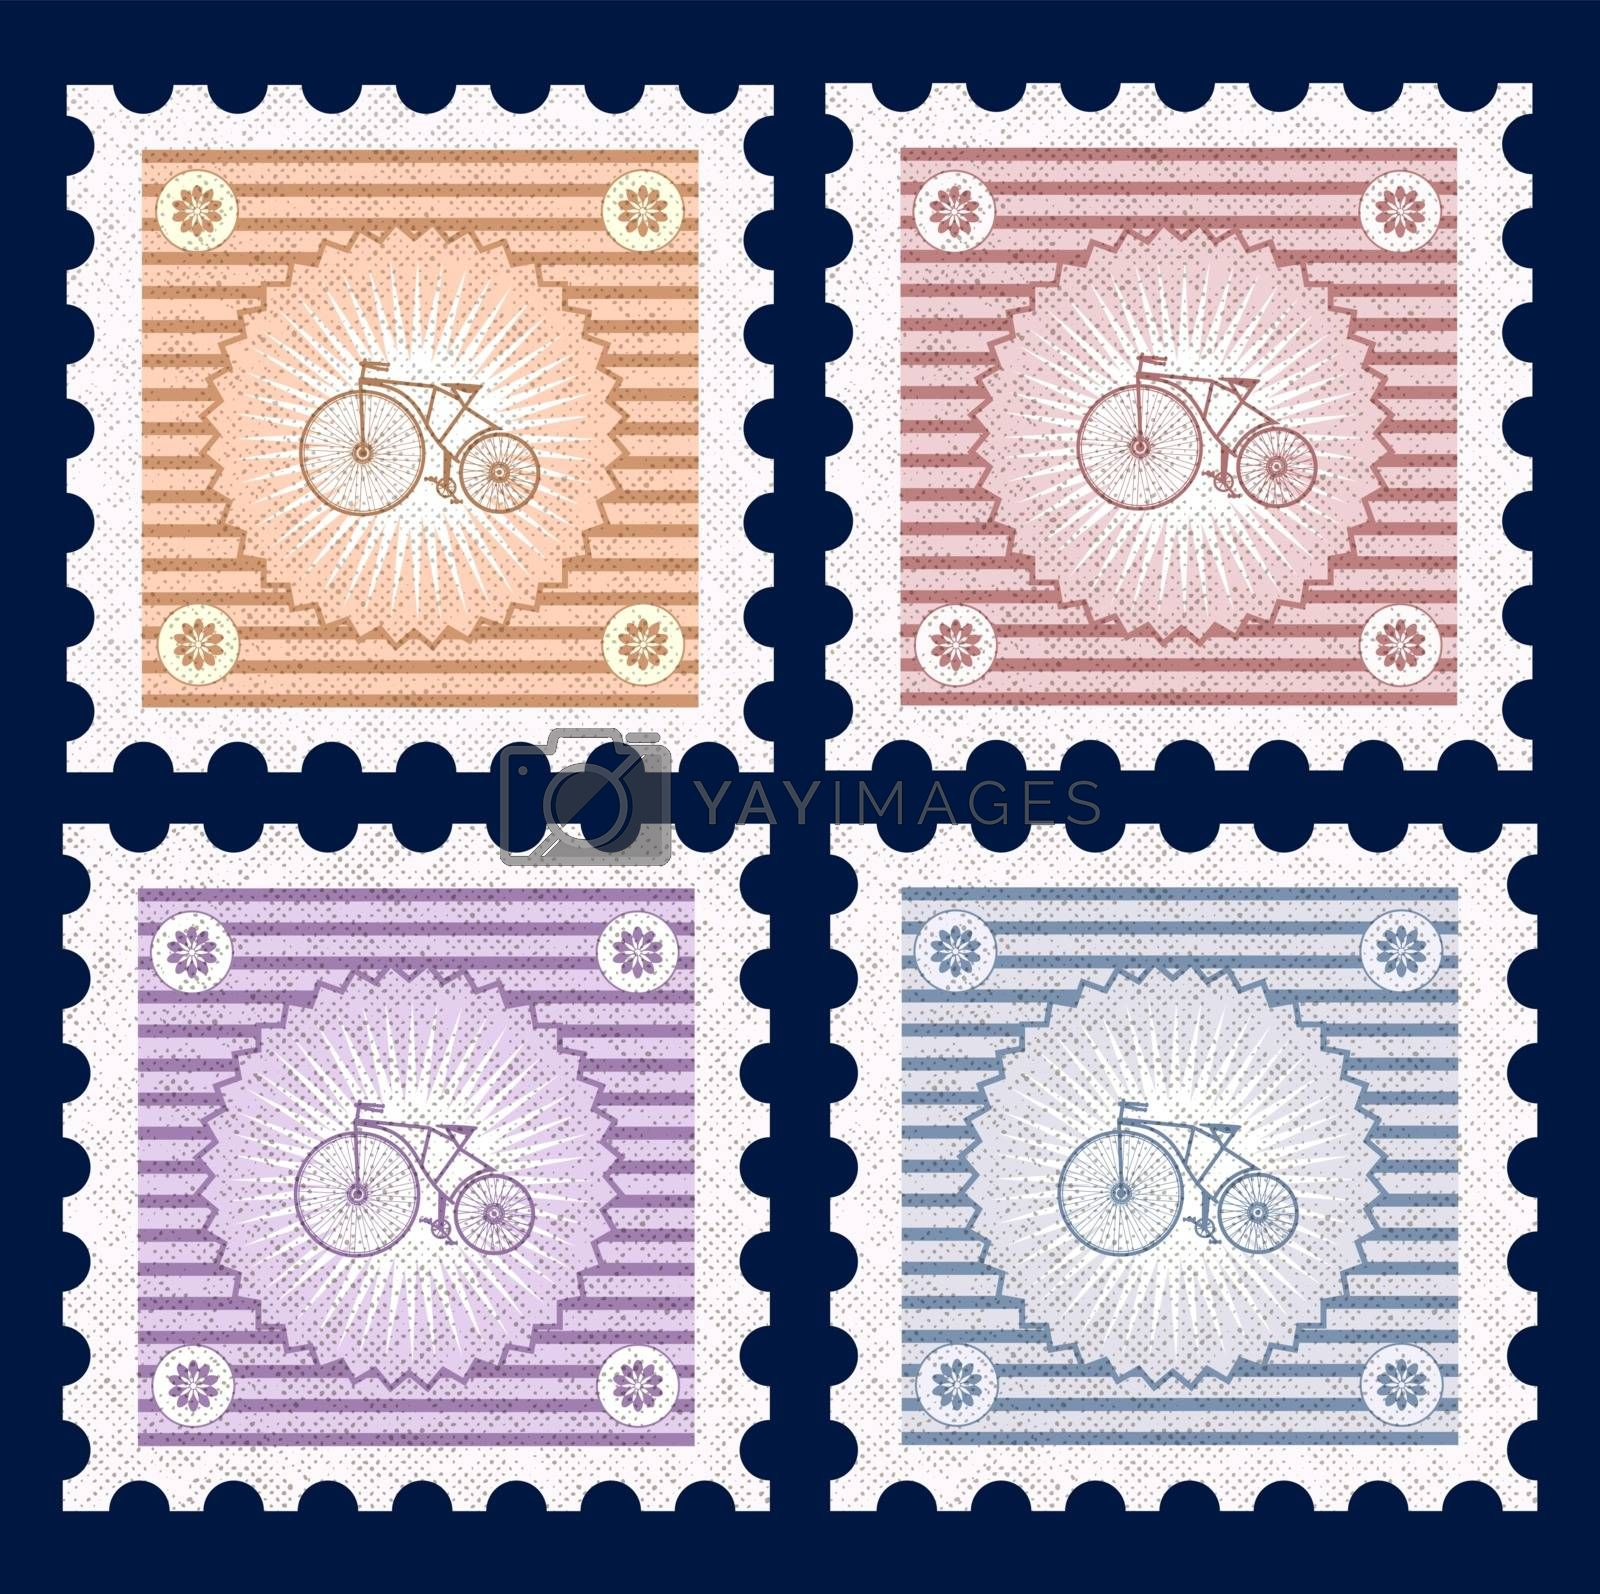 Retro postage stamps on the theme of transport and bicycles